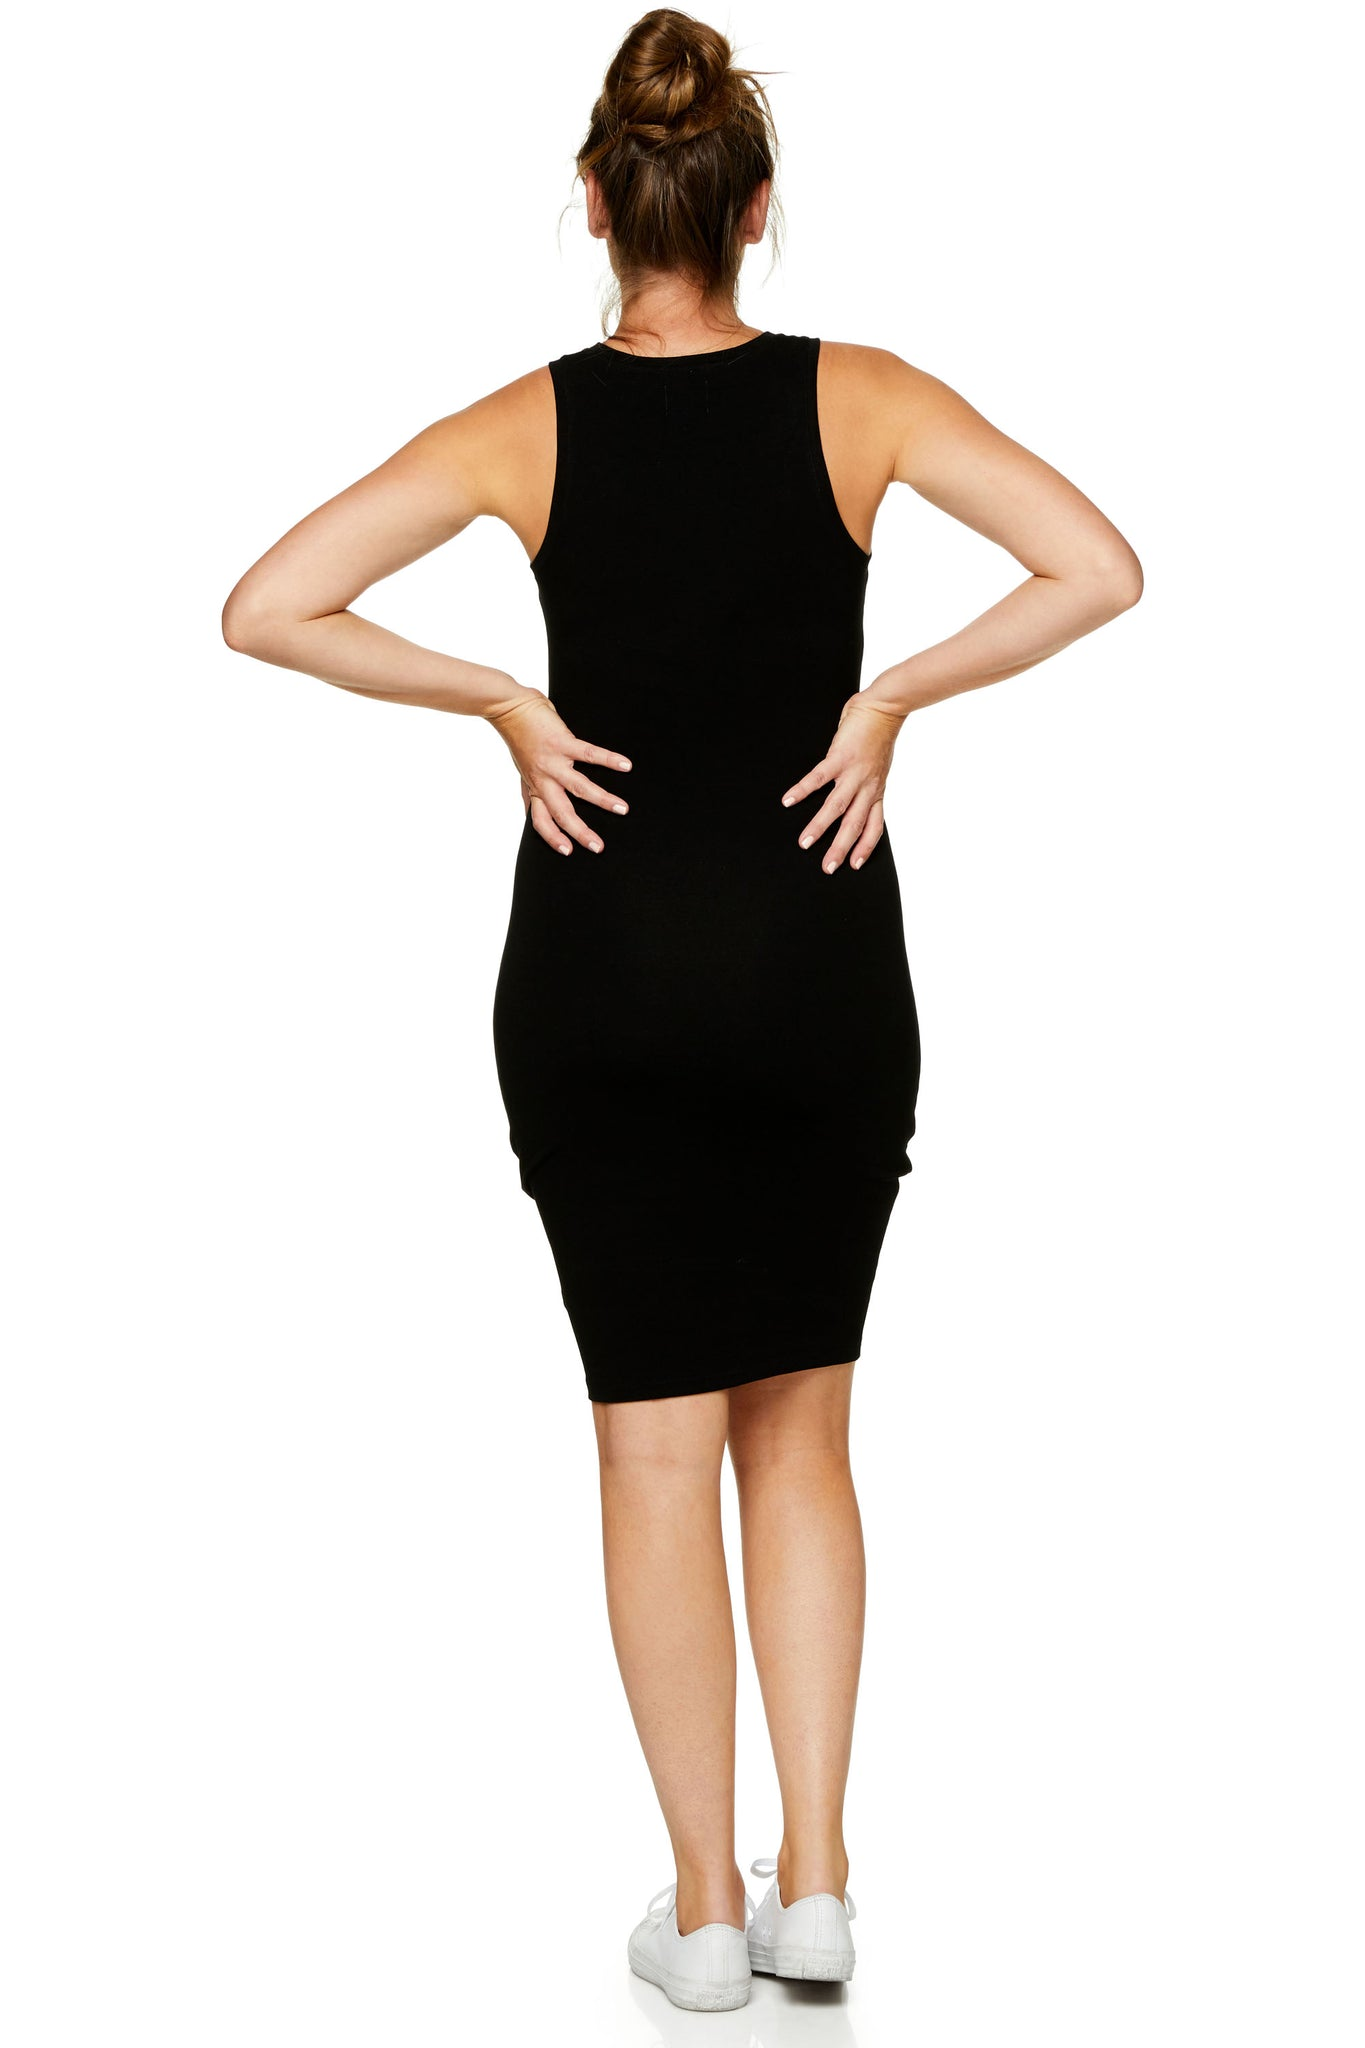 Bodycon maternity dress - black 7